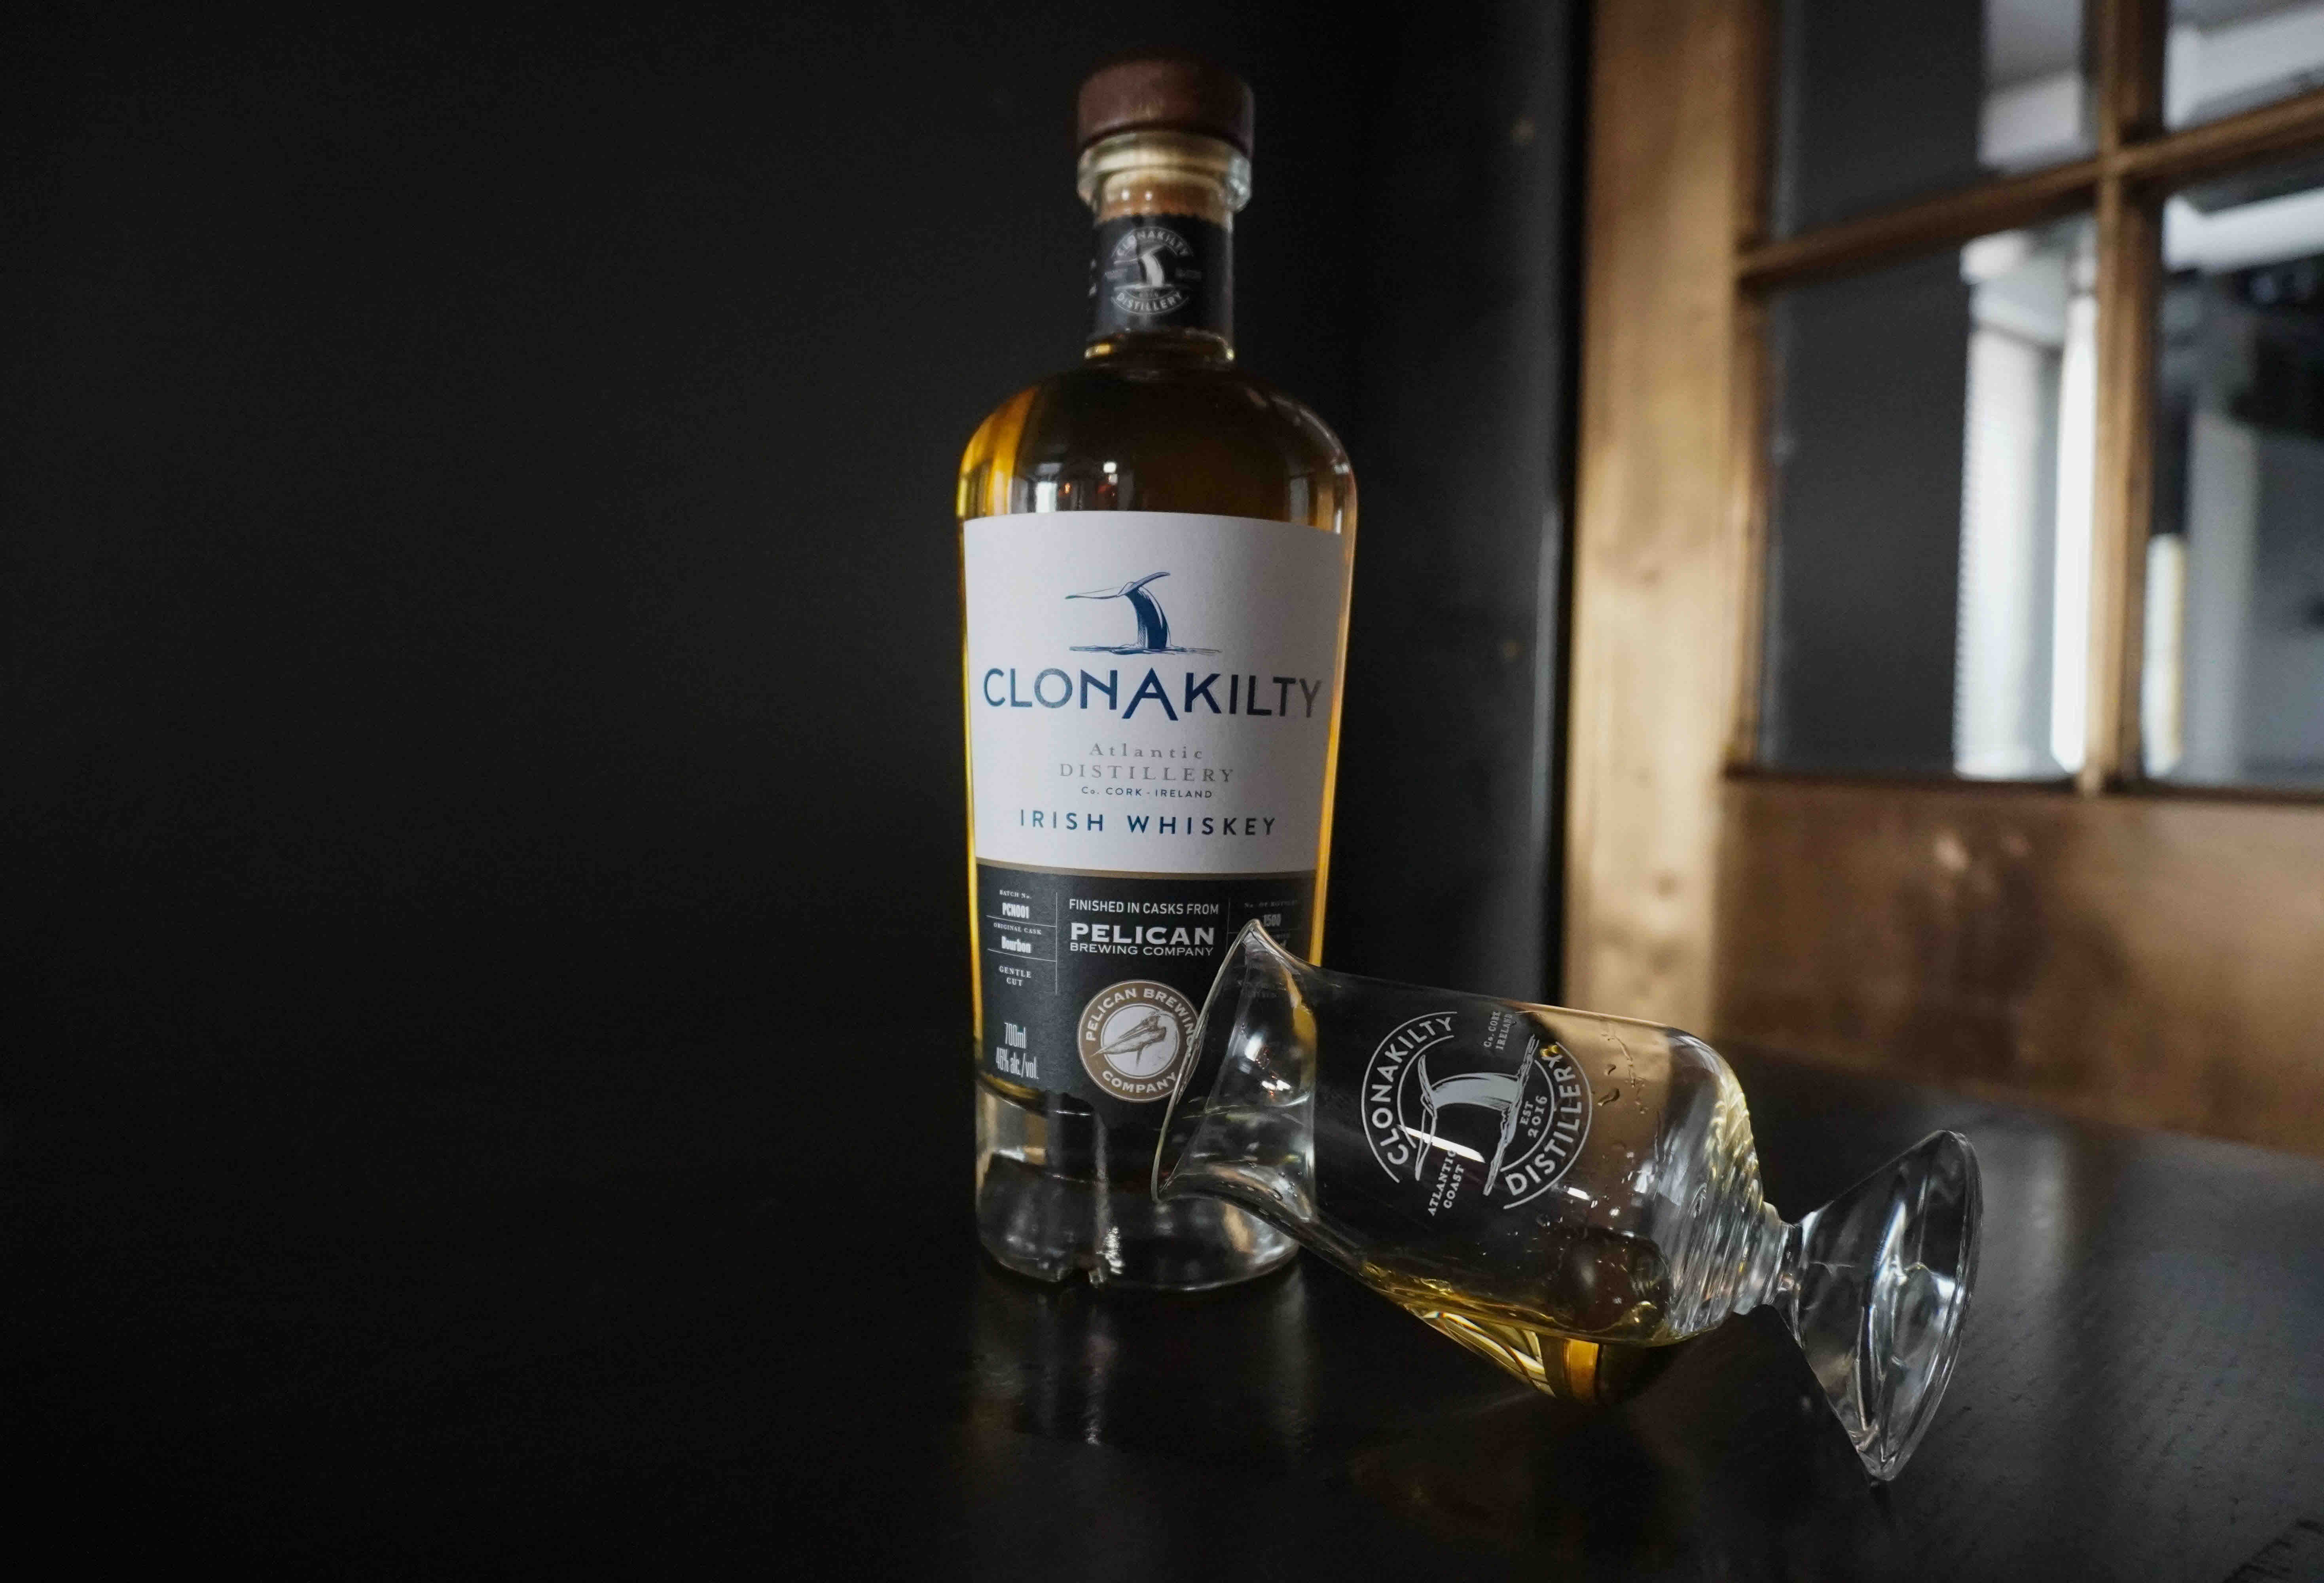 image of Clonakilty Mother of All Storms Cask Finish Irish Whiskey a collaboration with Pelican Brewing courtesy of Clonakilty Distillery